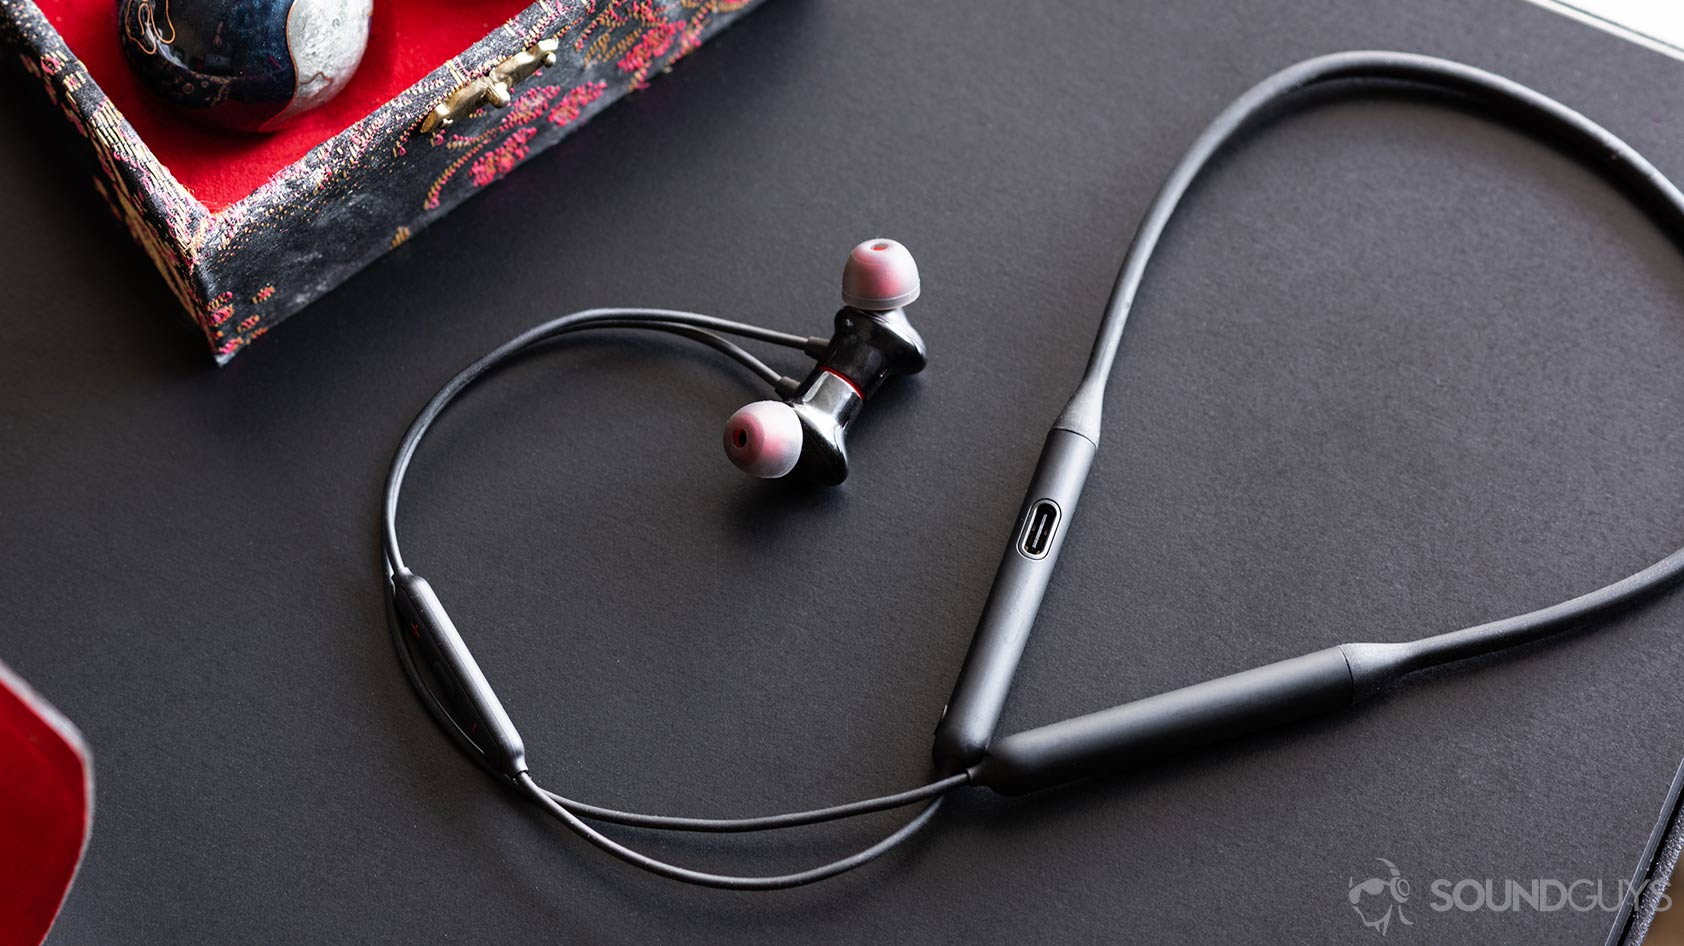 Oneplus Bullets Wireless 2 Review Soundguys